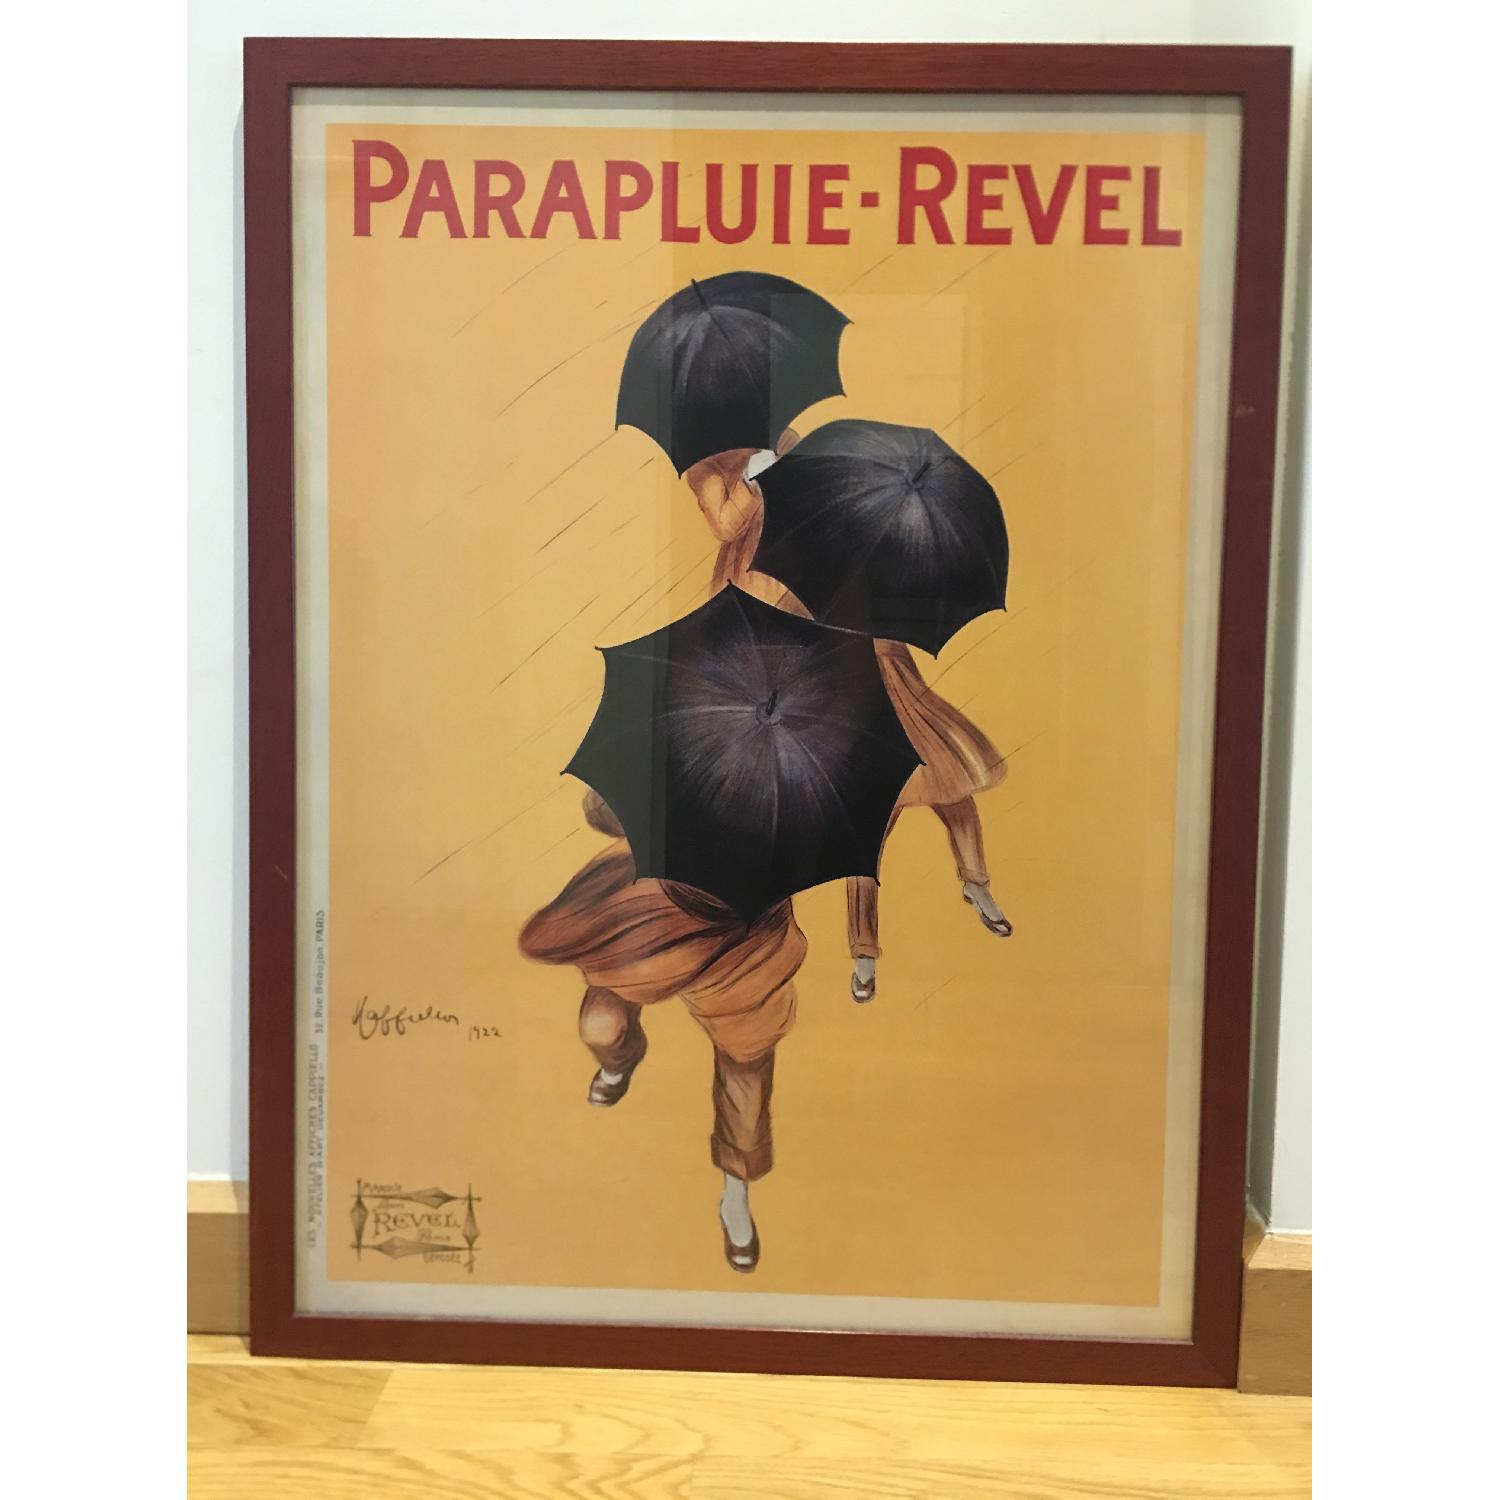 Vintage 1922 by Leonetto Cappiello Framed Parapluie-Revel - image-4